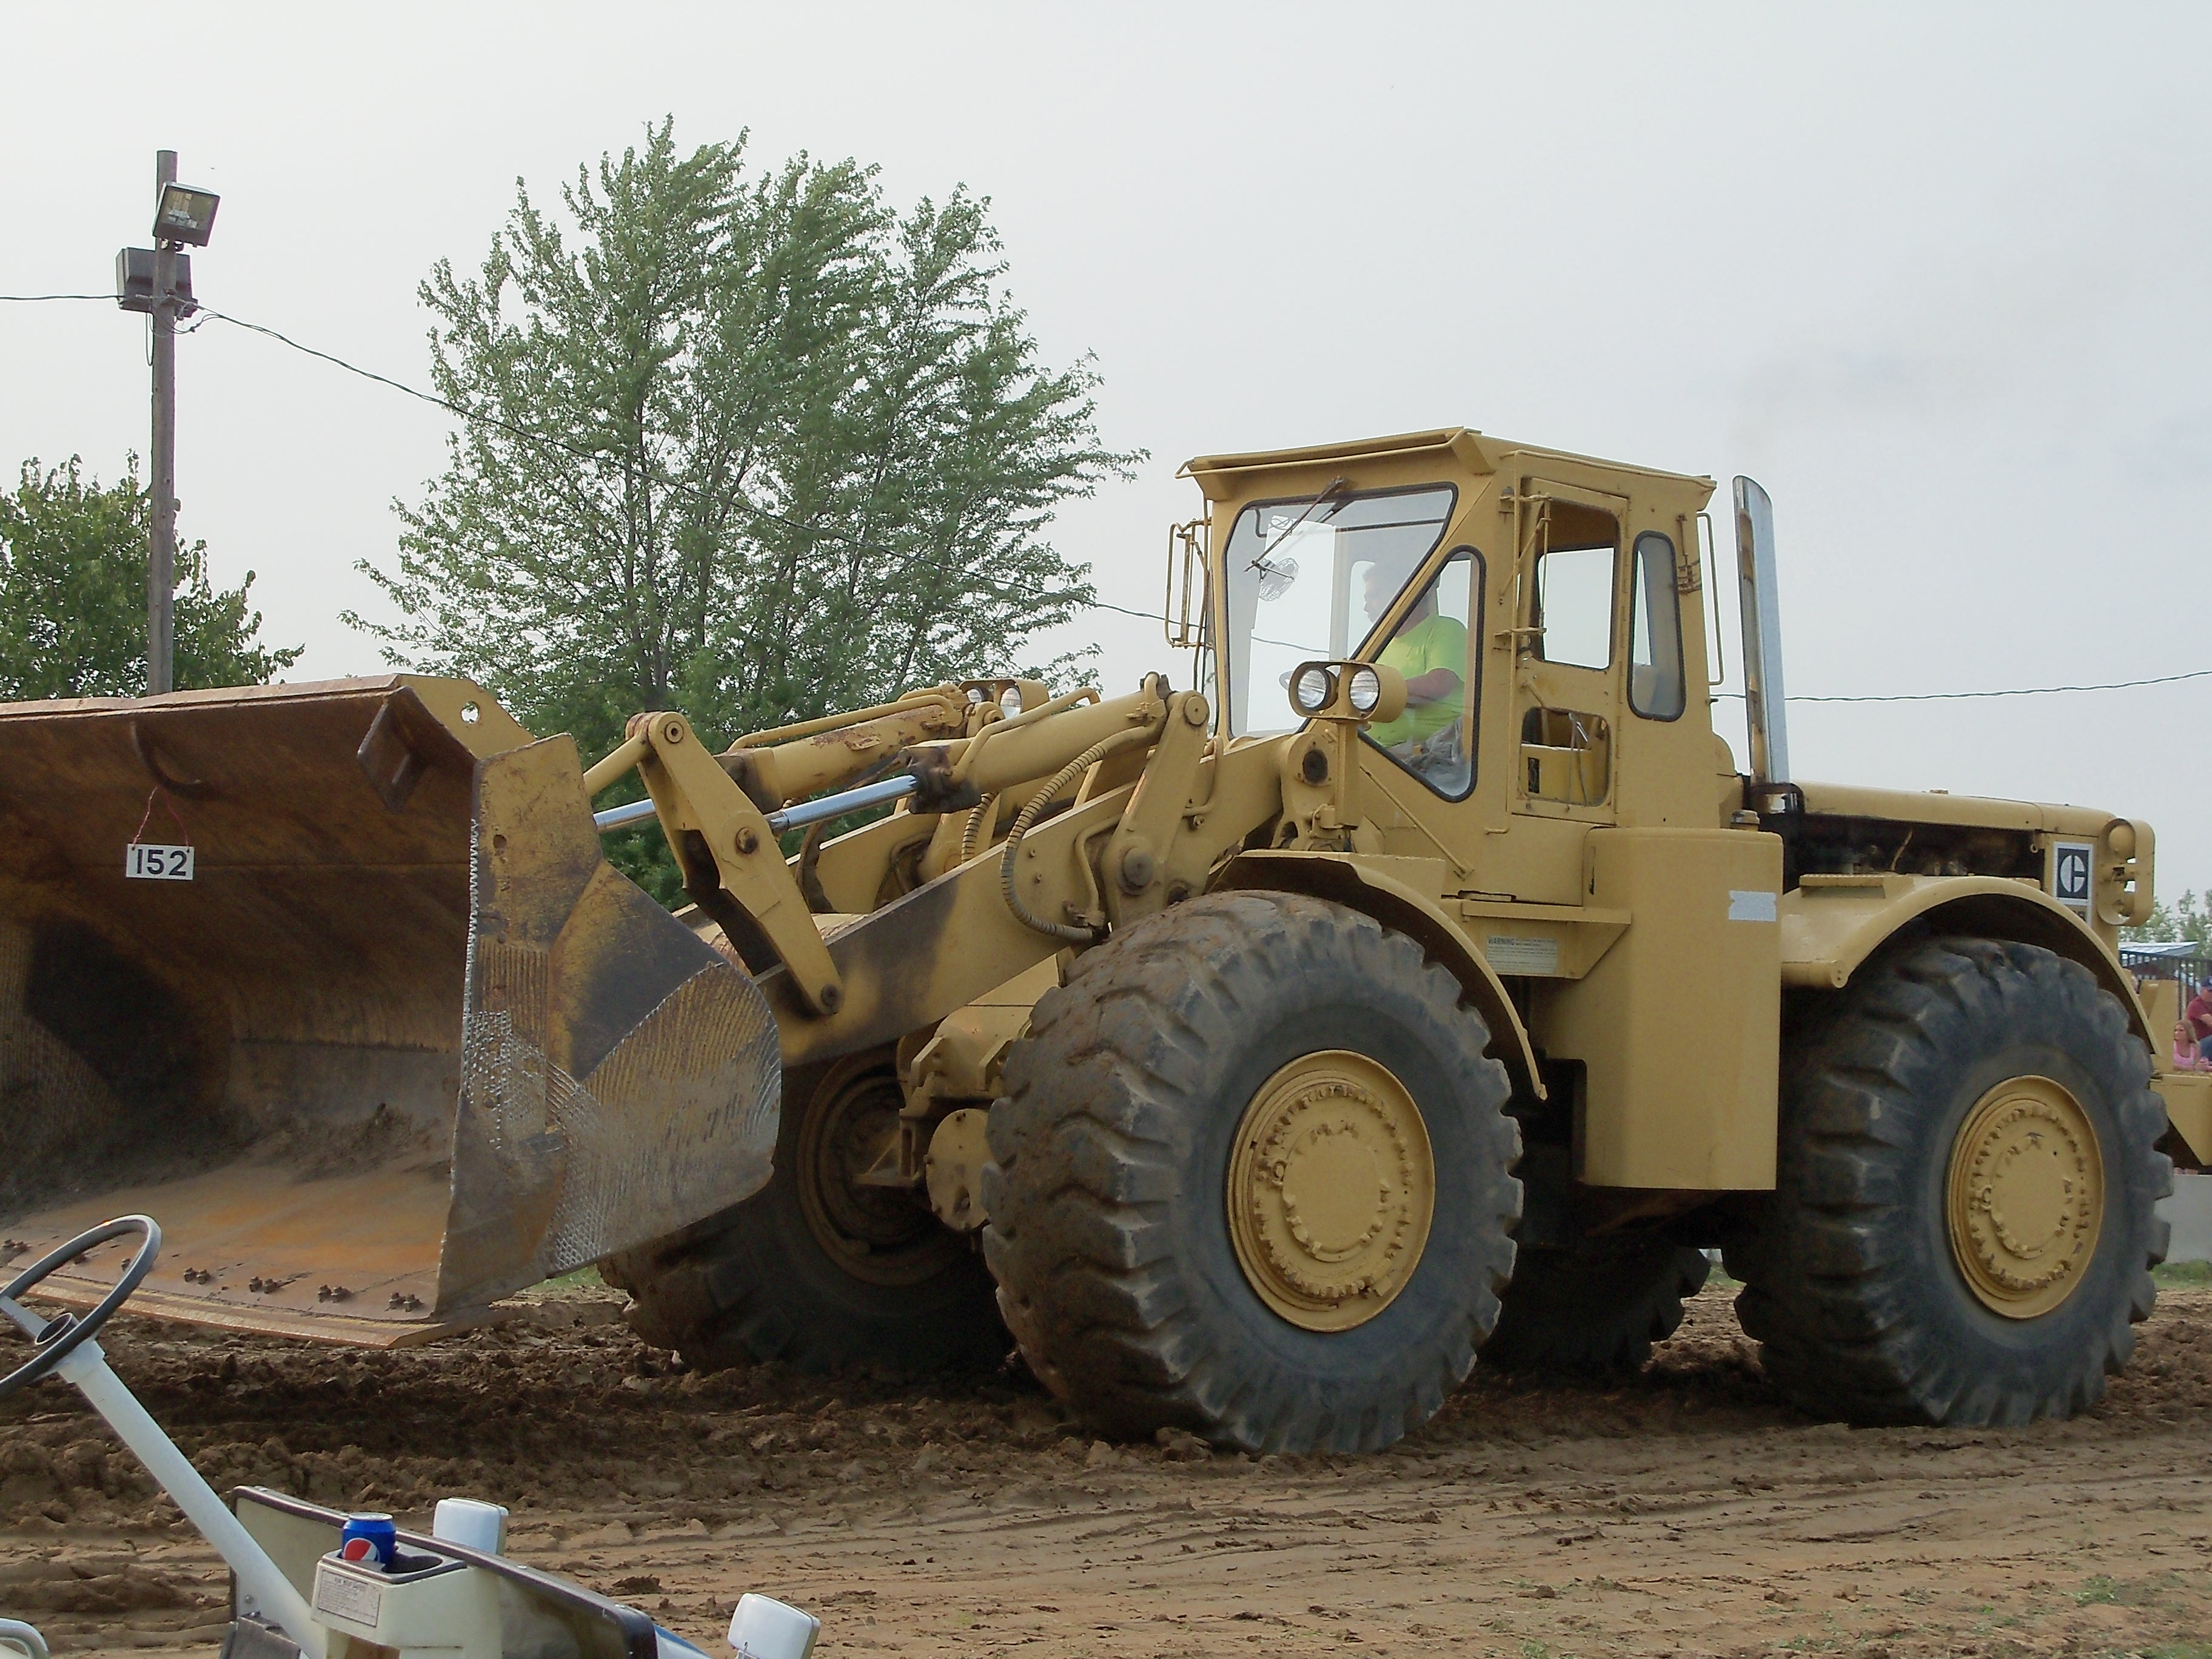 Excavation contracting equipment